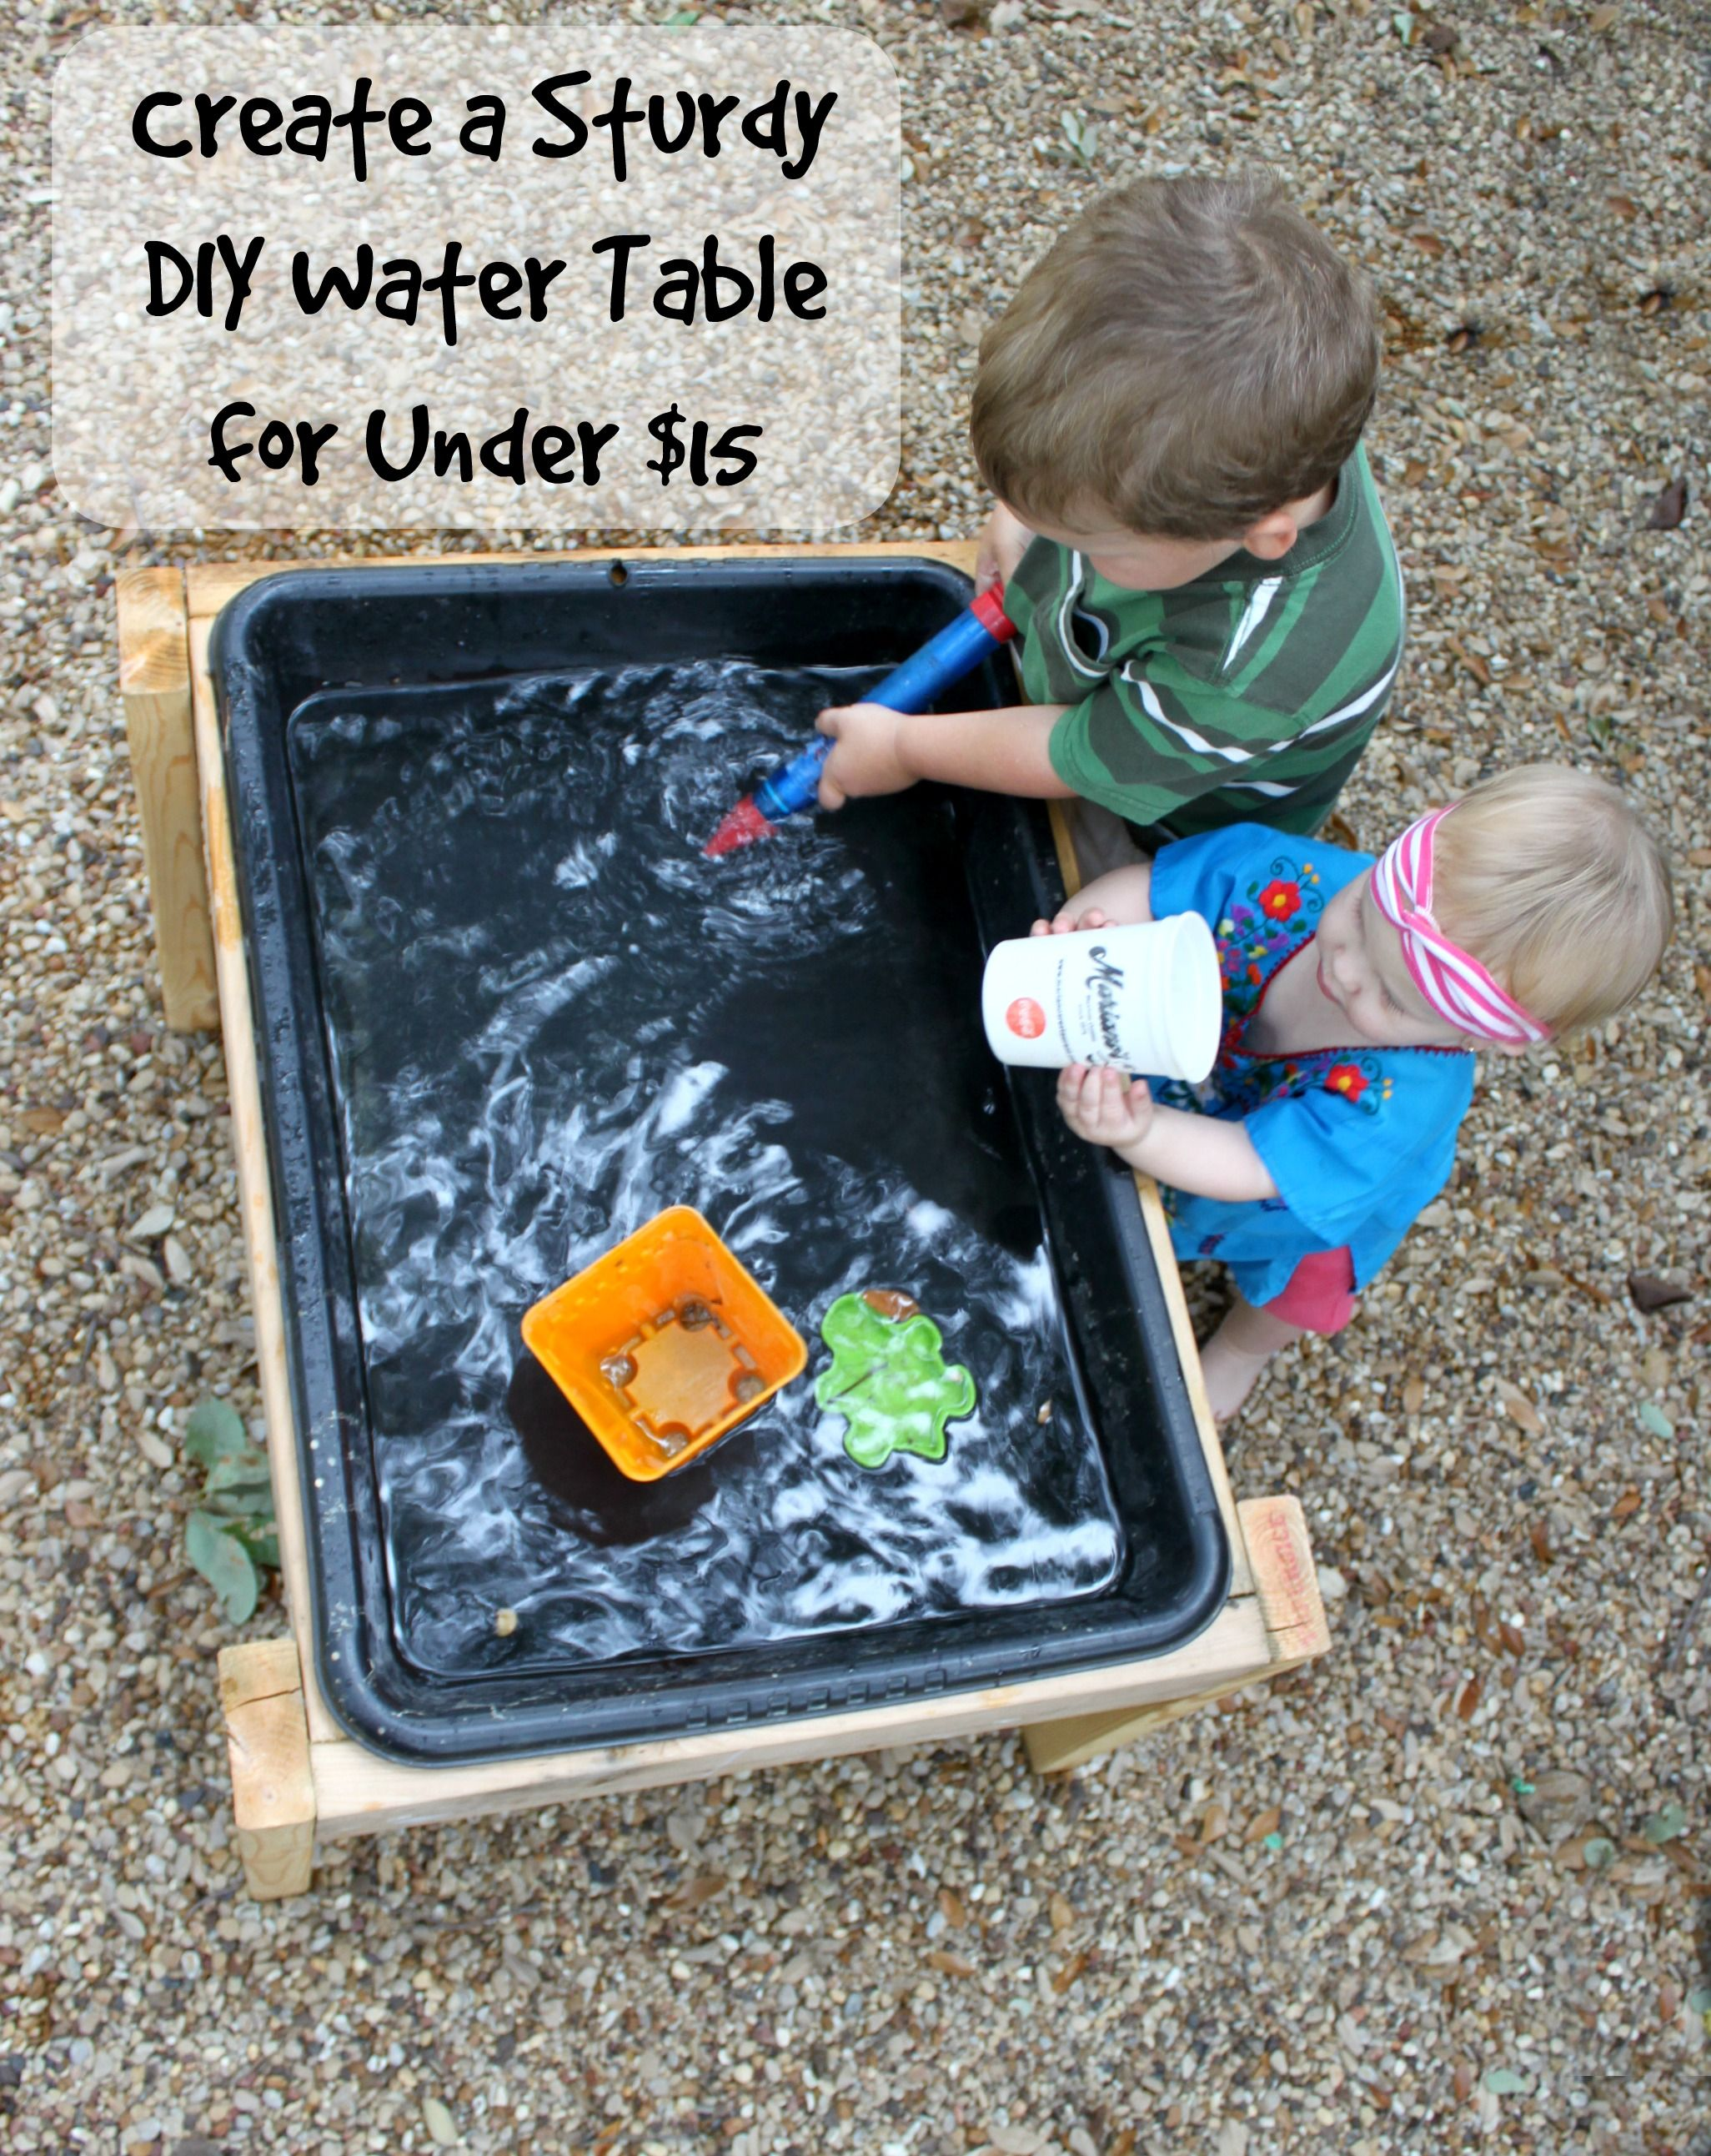 Make a DIY Water Table for Less than